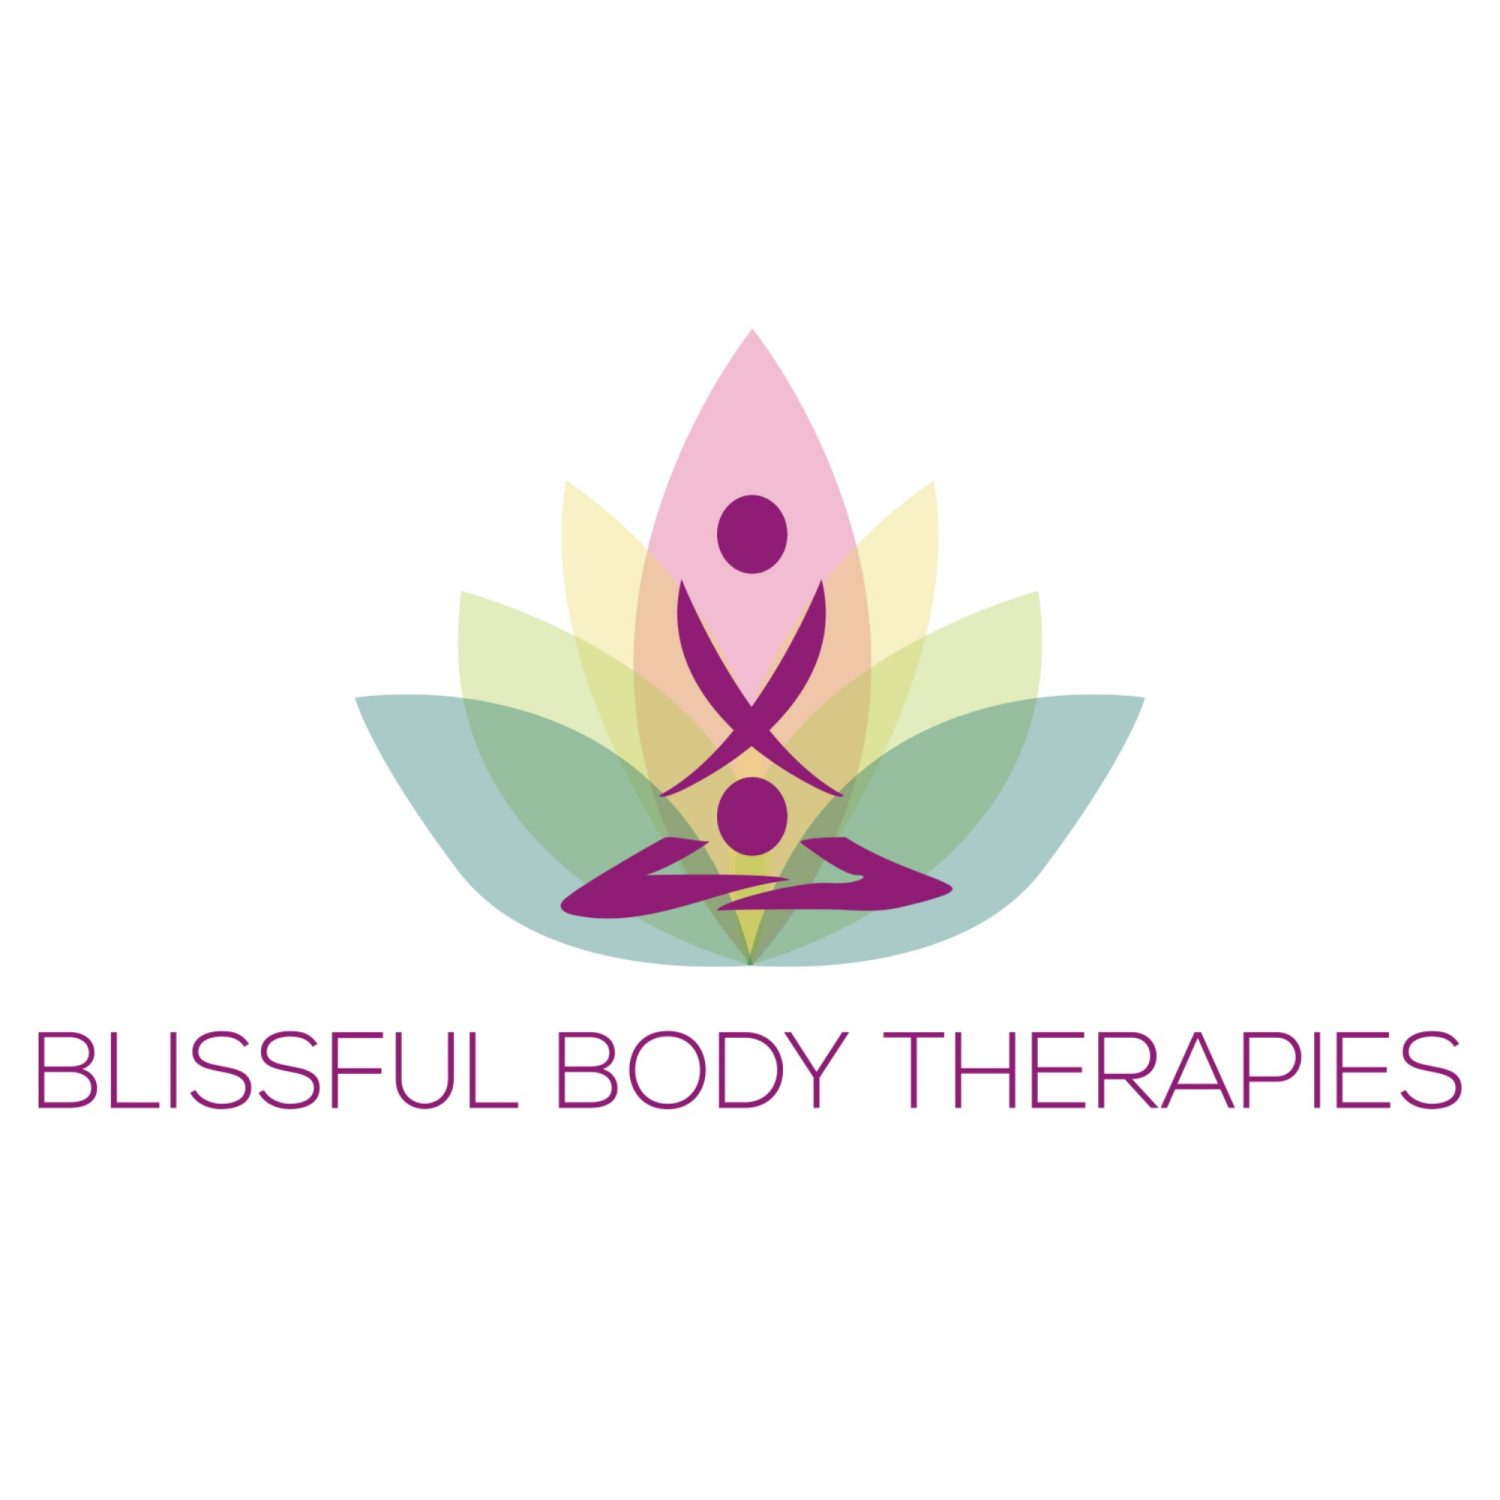 Blissful Body Therapies